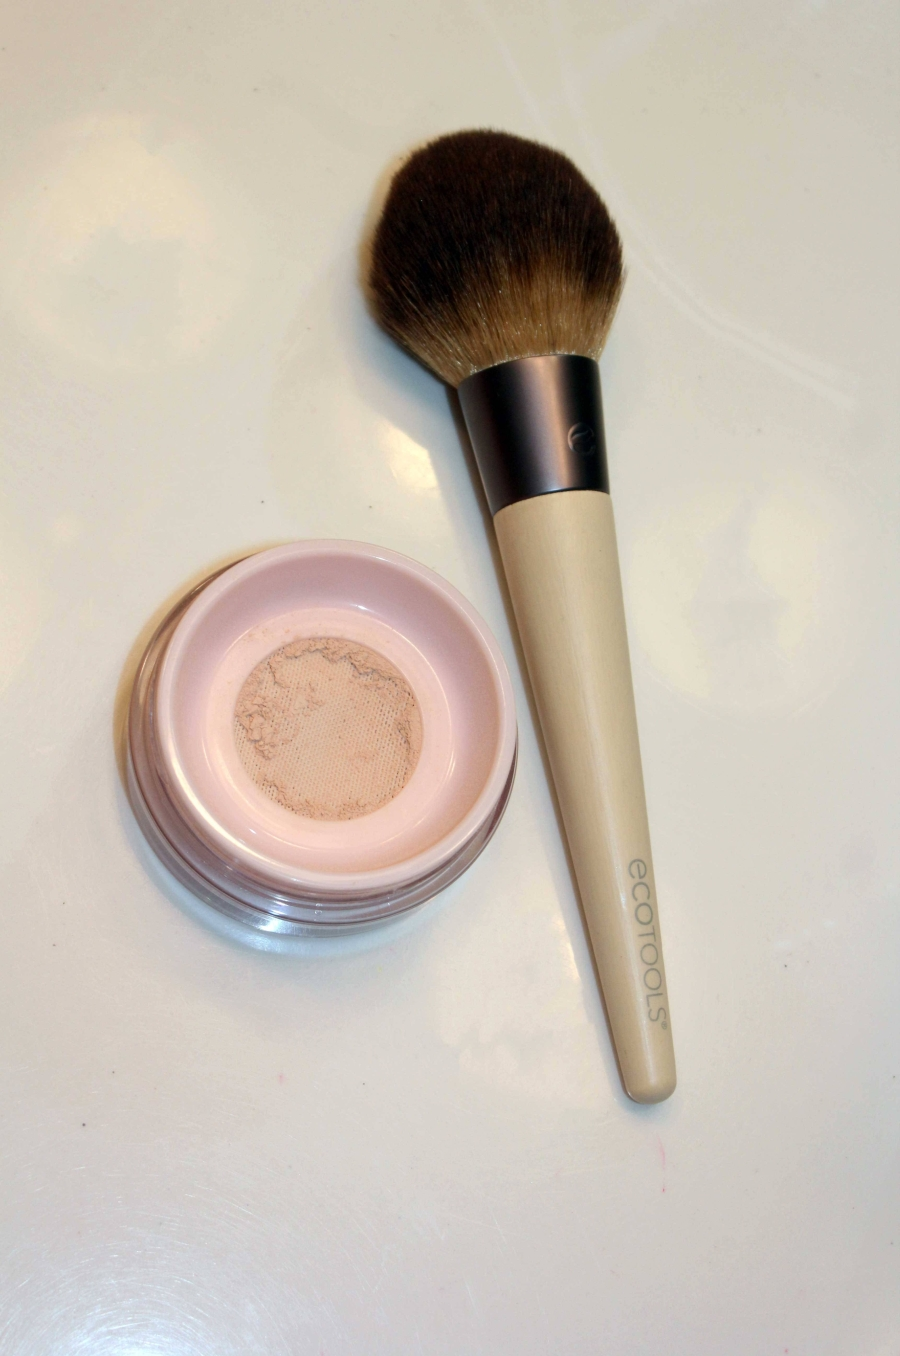 Eco Tools Brush and Glossier Powder